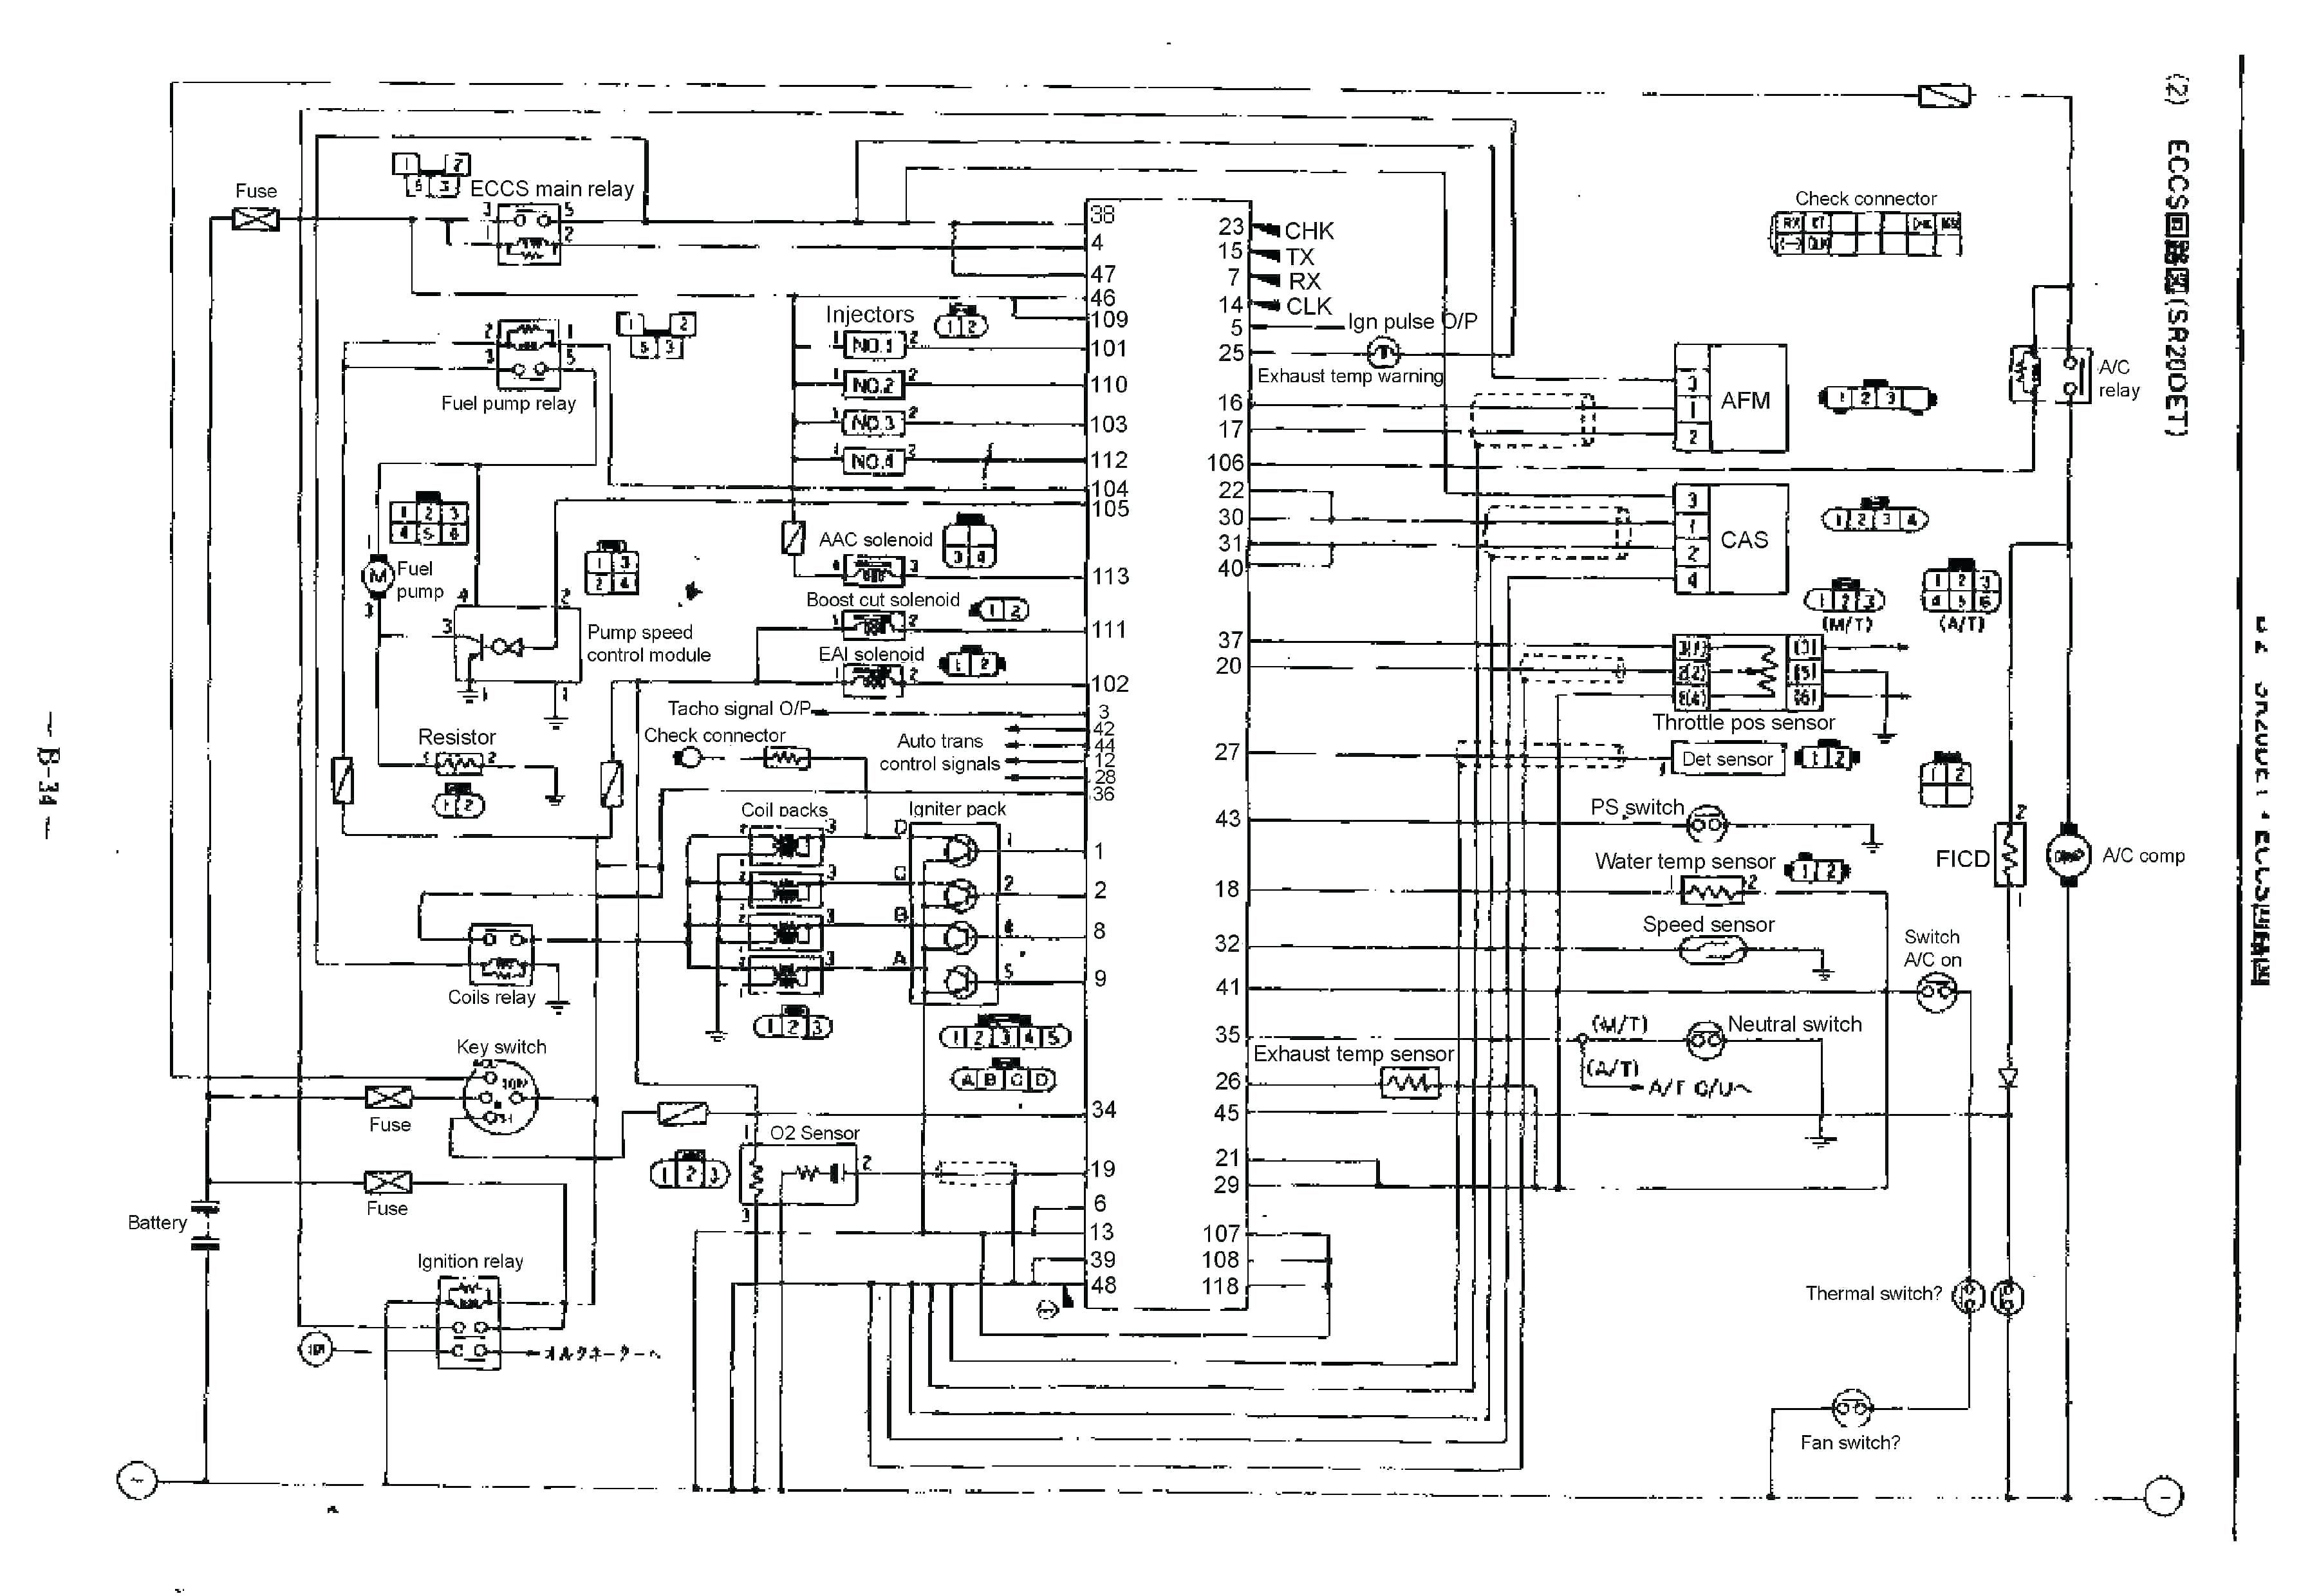 2005 Yamaha Yfz 450 Wiring Diagram 4 Pole 05 Schematic Review Best Of Electrical Diagram Diagram Alternator